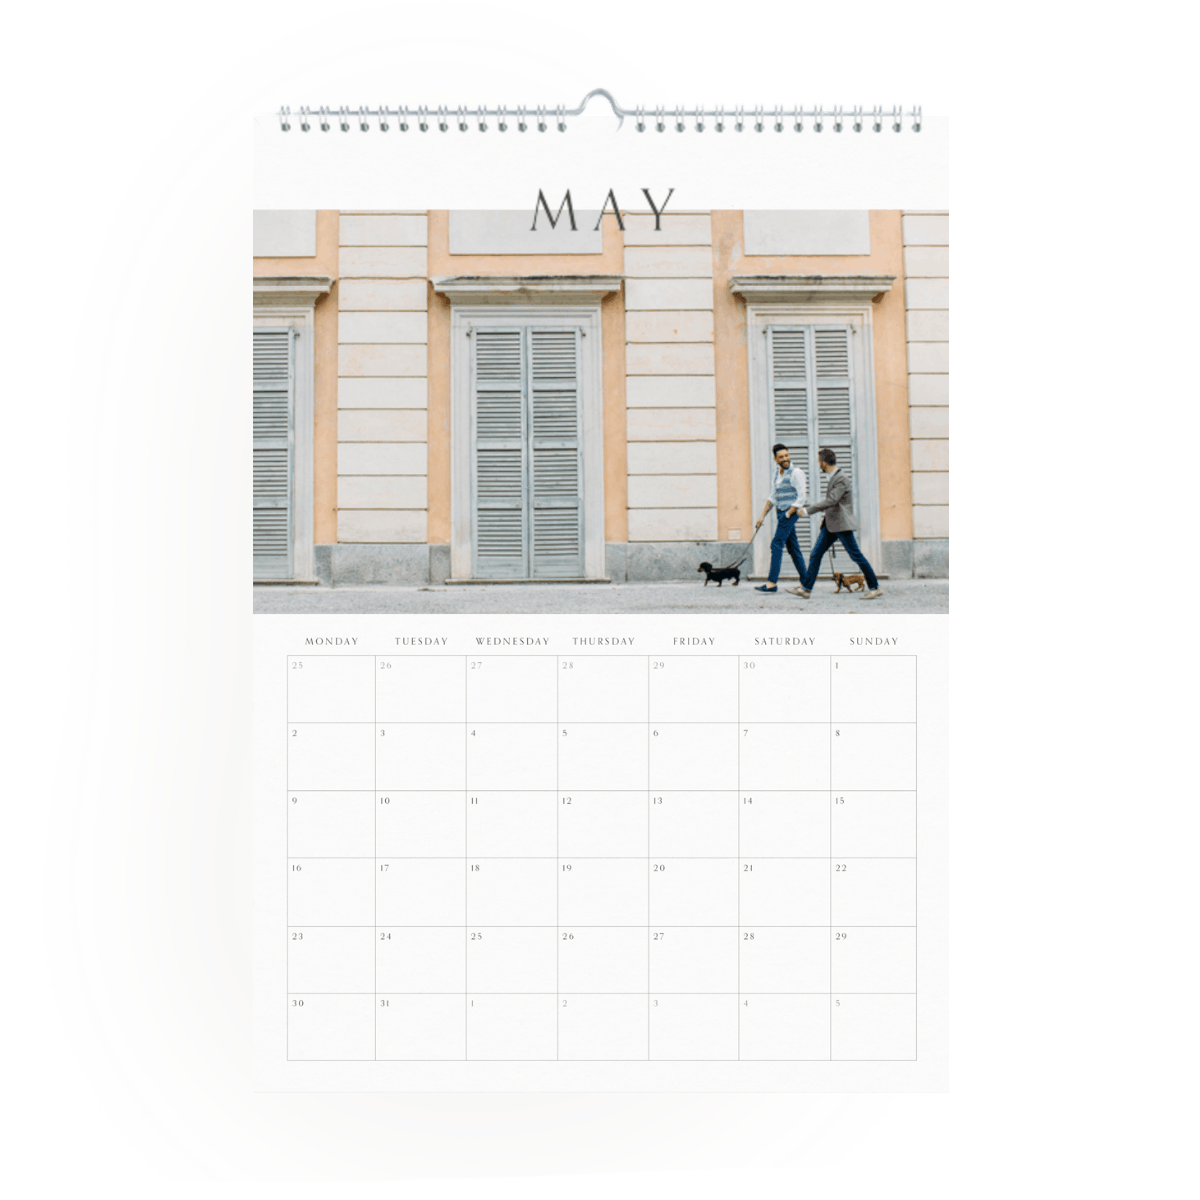 Https%3a%2f%2fwww.papier.com%2fproduct image%2f89407%2f76%2f2020 photo calendar 22424 may 1570713479.png?ixlib=rb 1.1